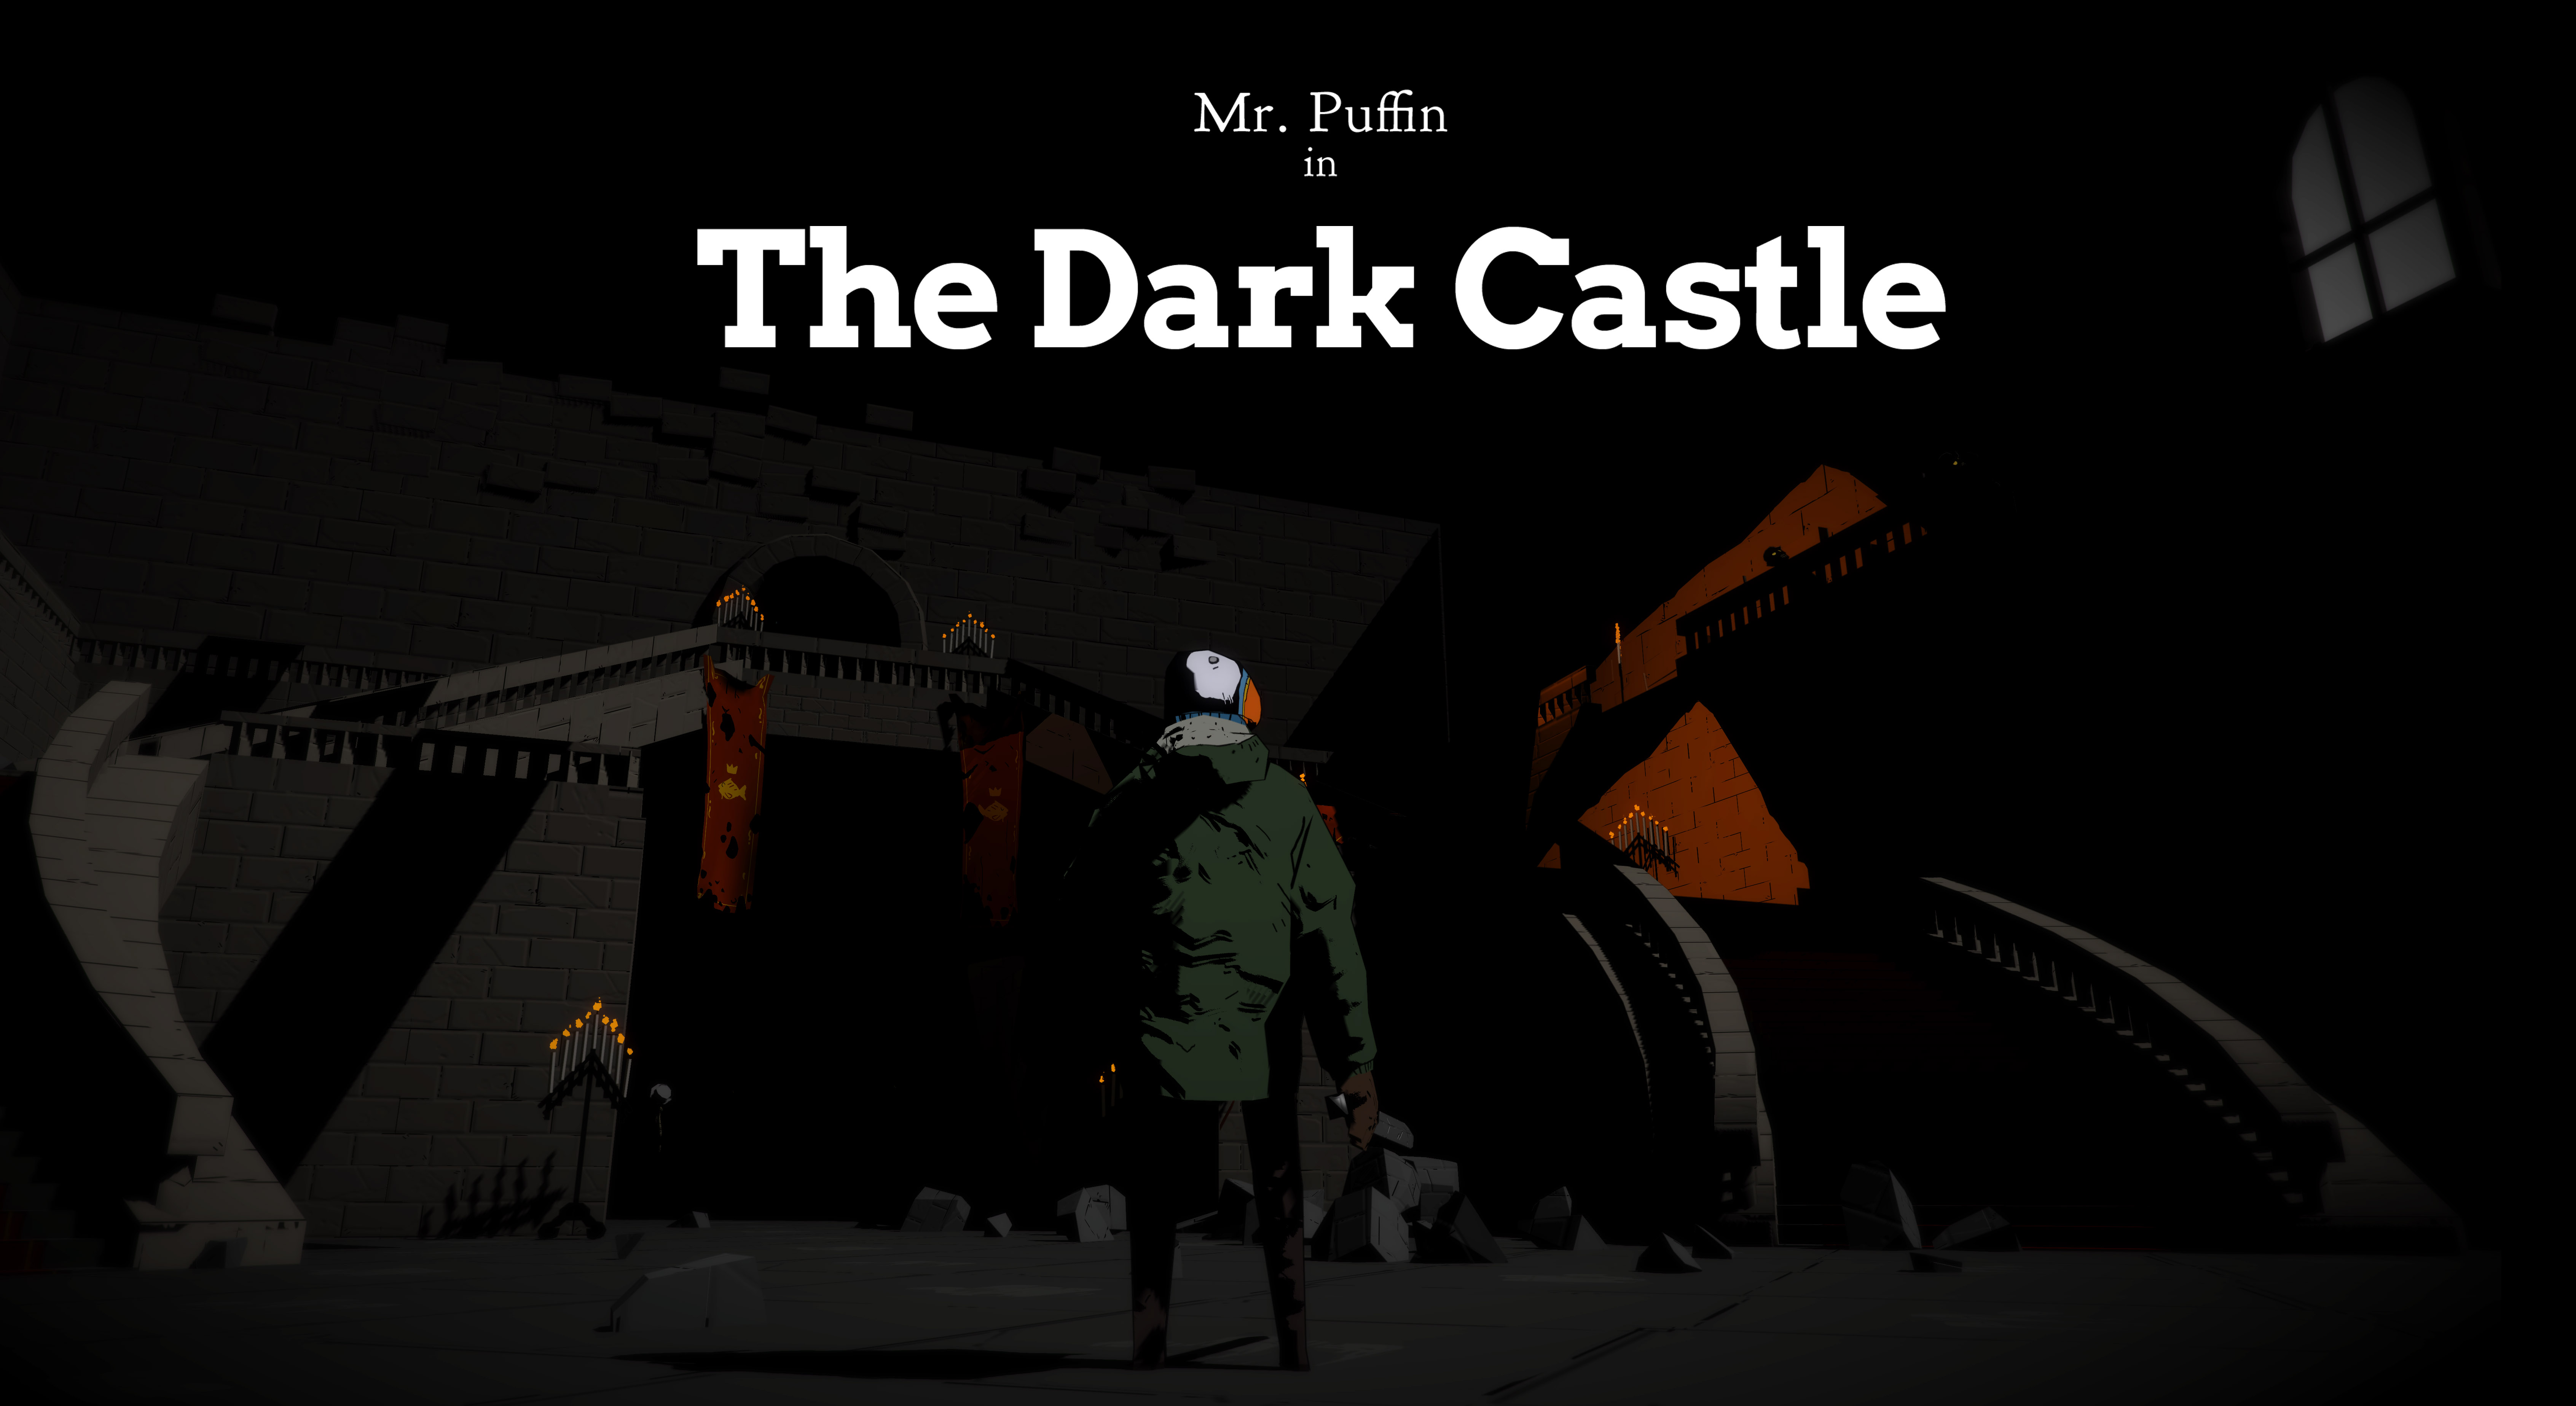 Mr. Puffin in The Dark Castle